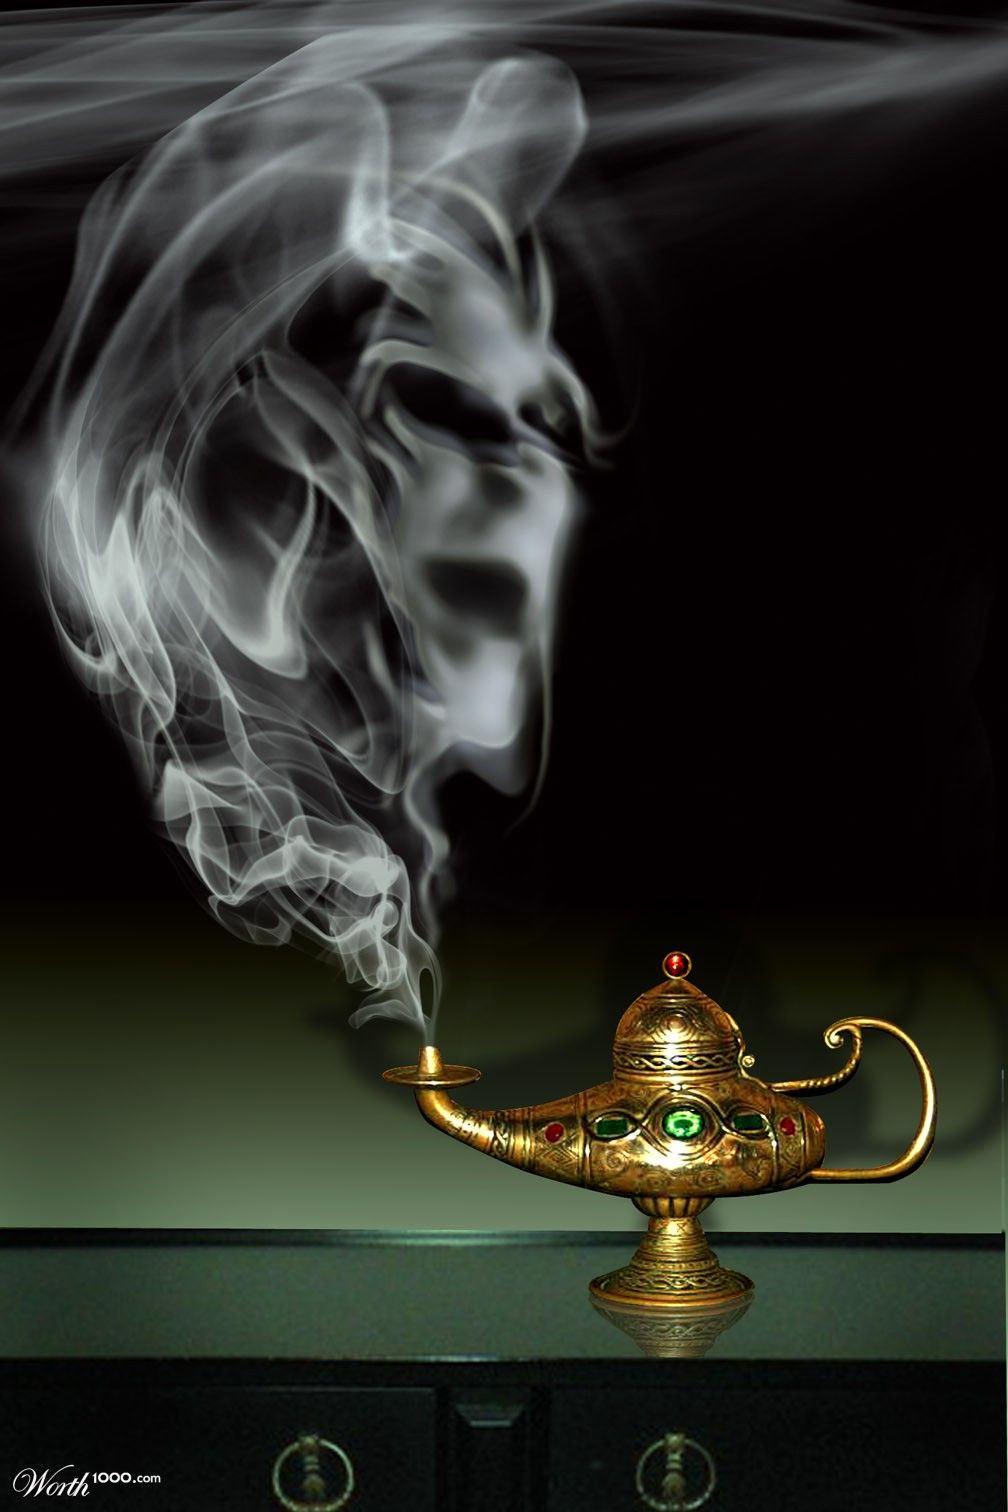 Magical Item-Genie lamp | Magical Items | Pinterest | Genie lamp ... for Magic Lamp With Smoke  51ane